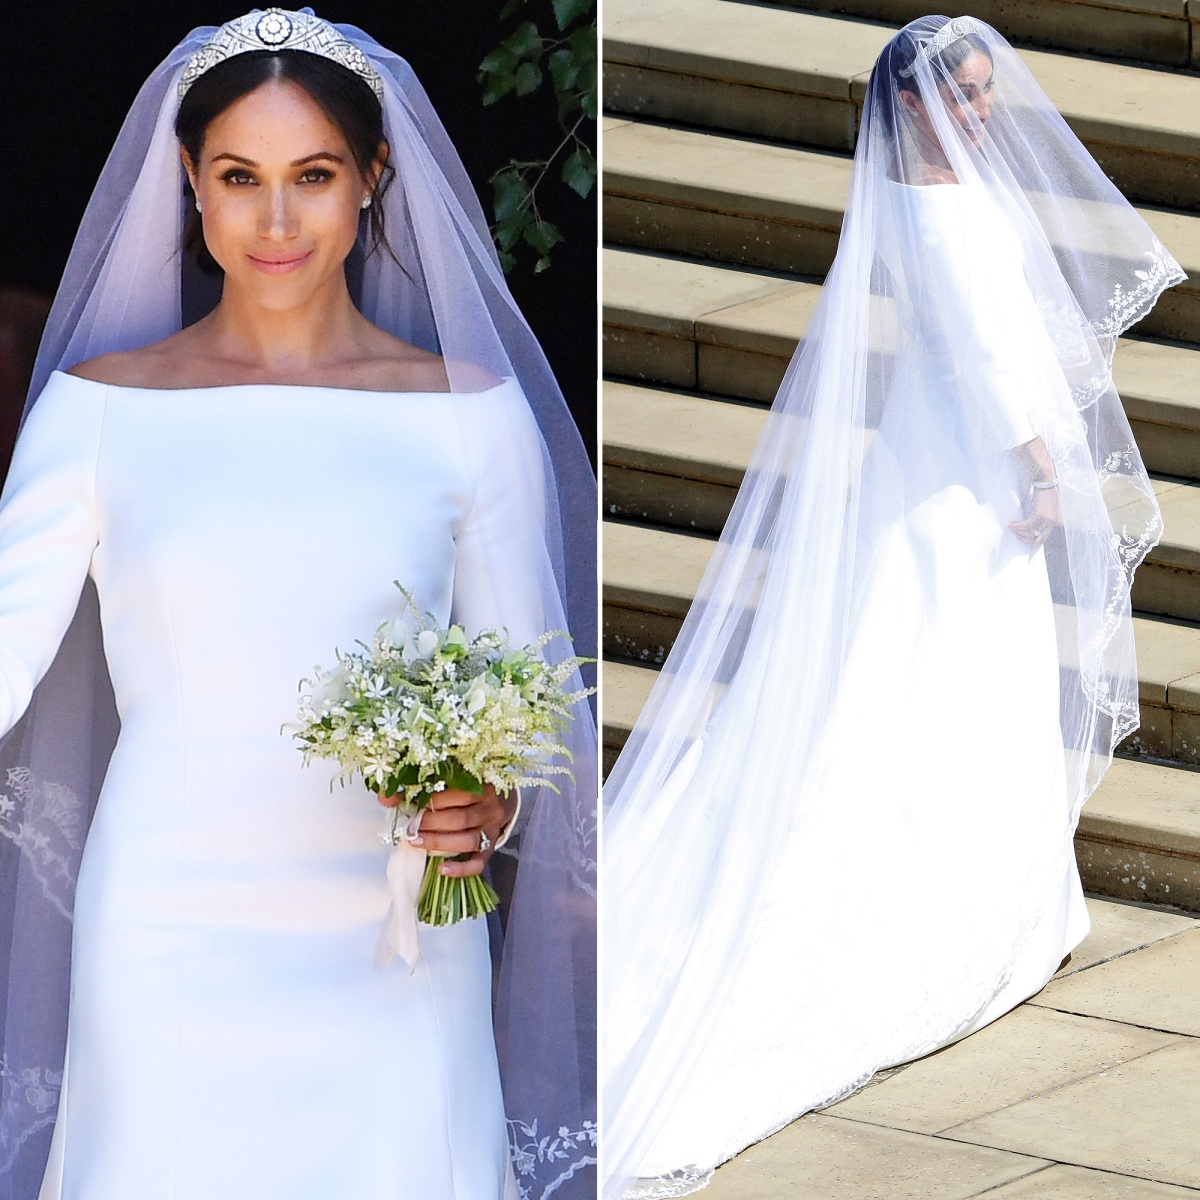 The Most Amazing Royal Wedding Dresses Ever - Us Weekly